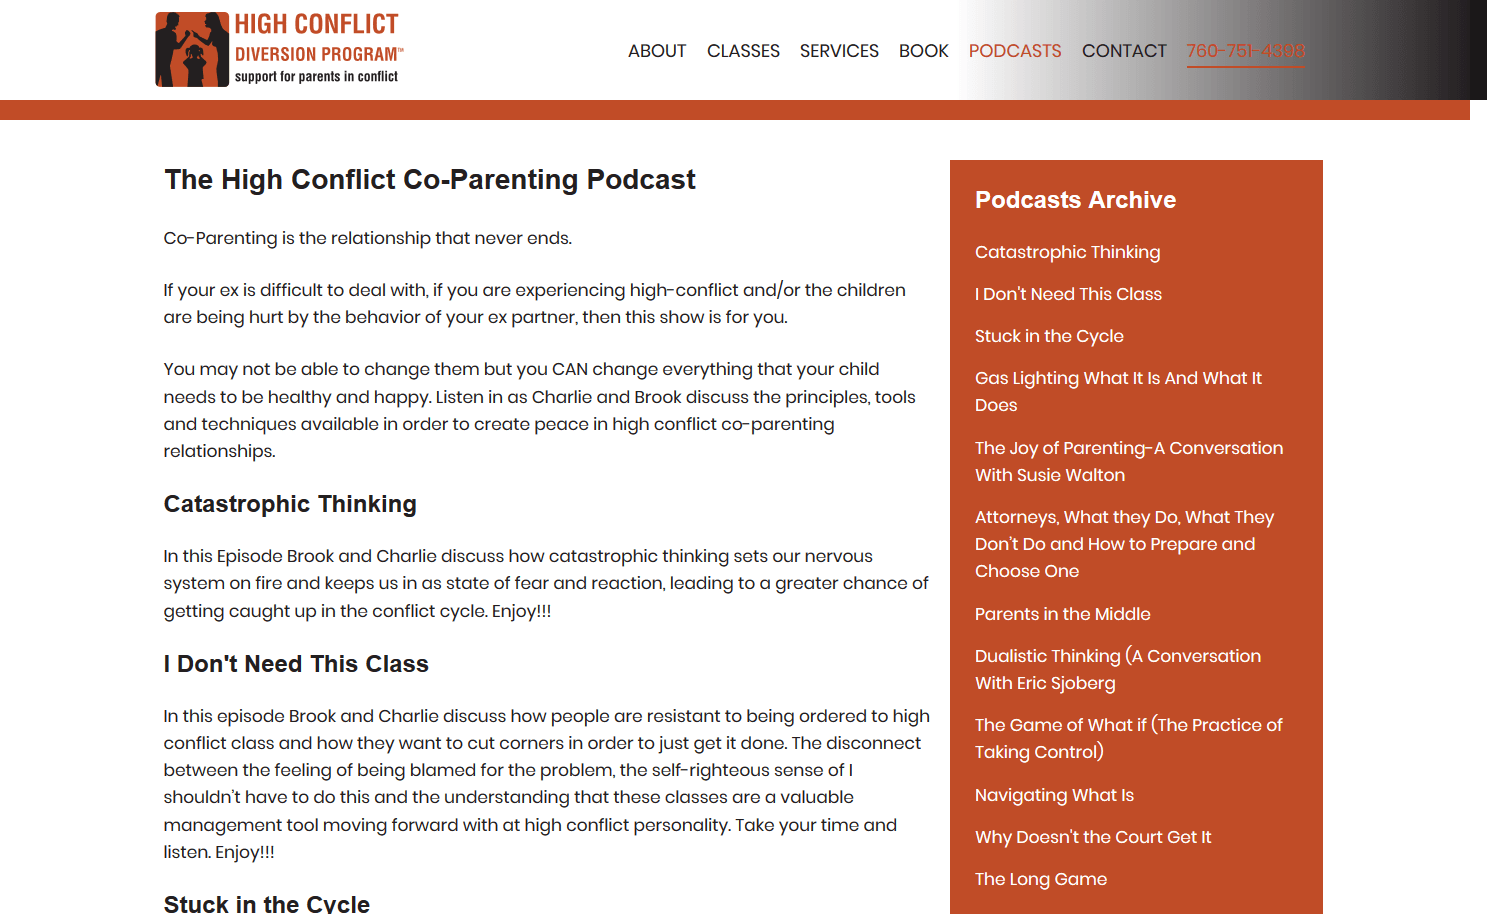 High Conflict Diversion Program Podcast